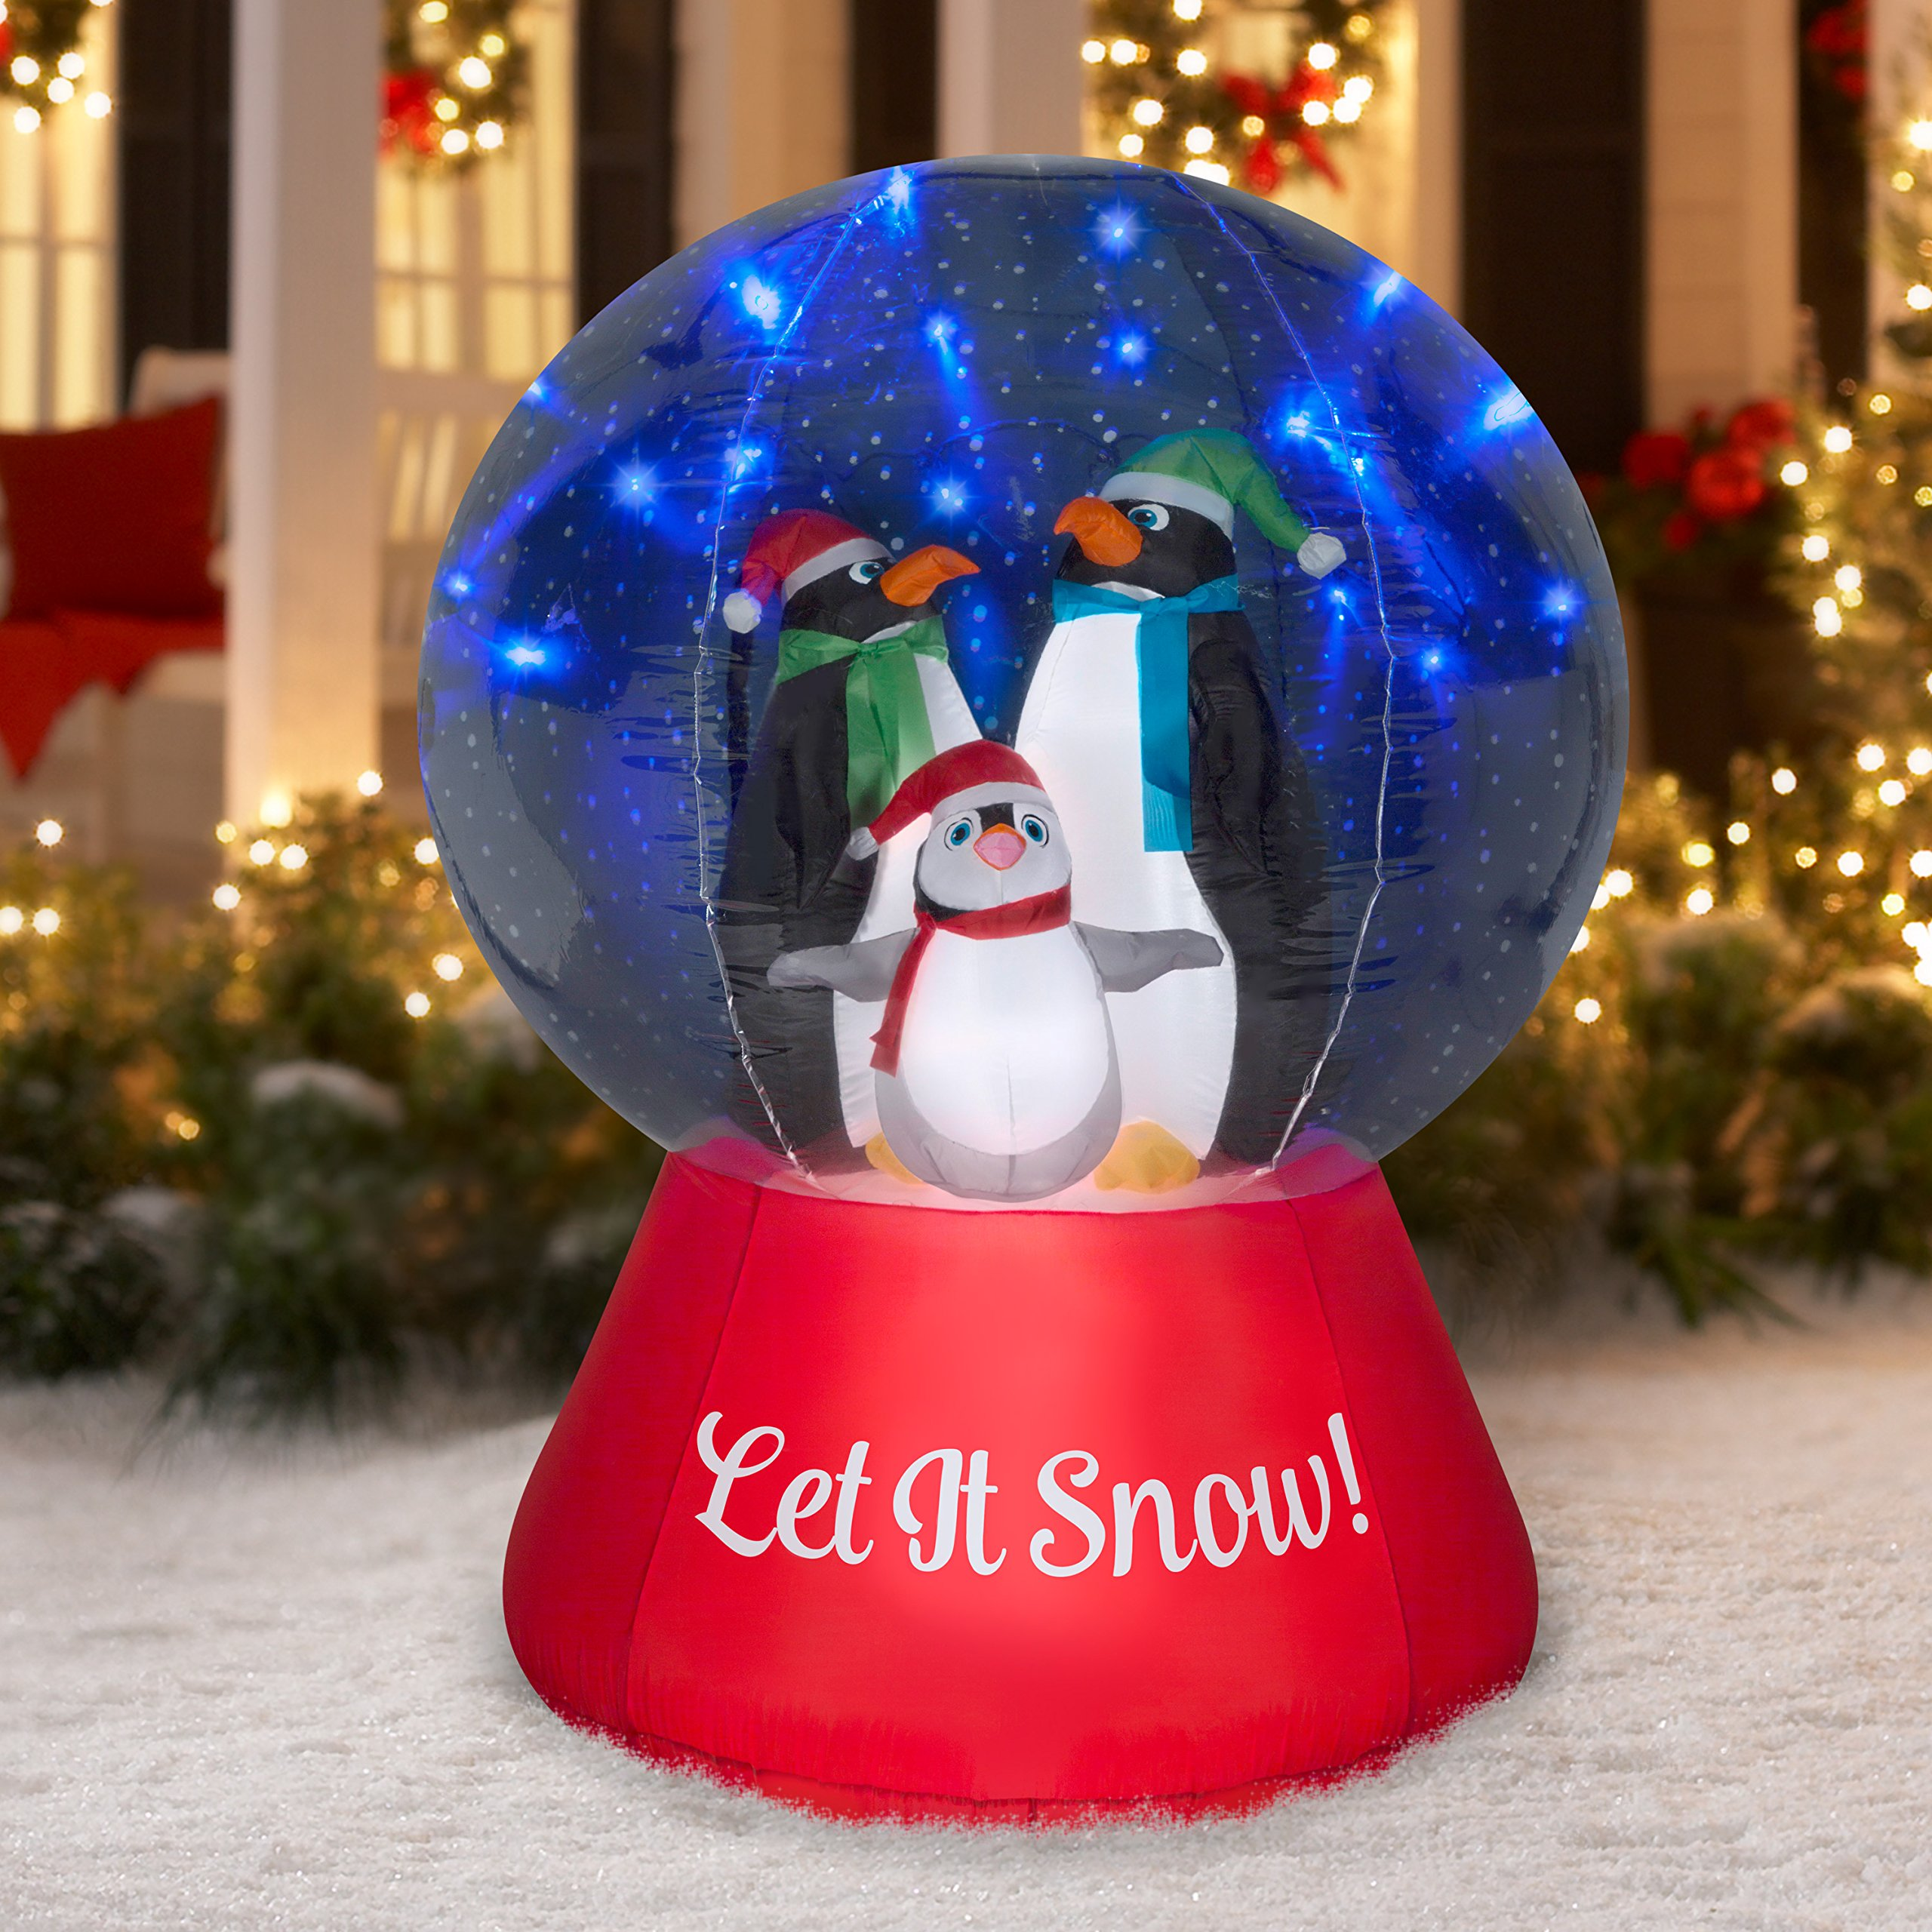 Airblown Inflatable Snow Globe w/Glimmer LED Penguin Family Scene 5ft tall by Gemmy Industries